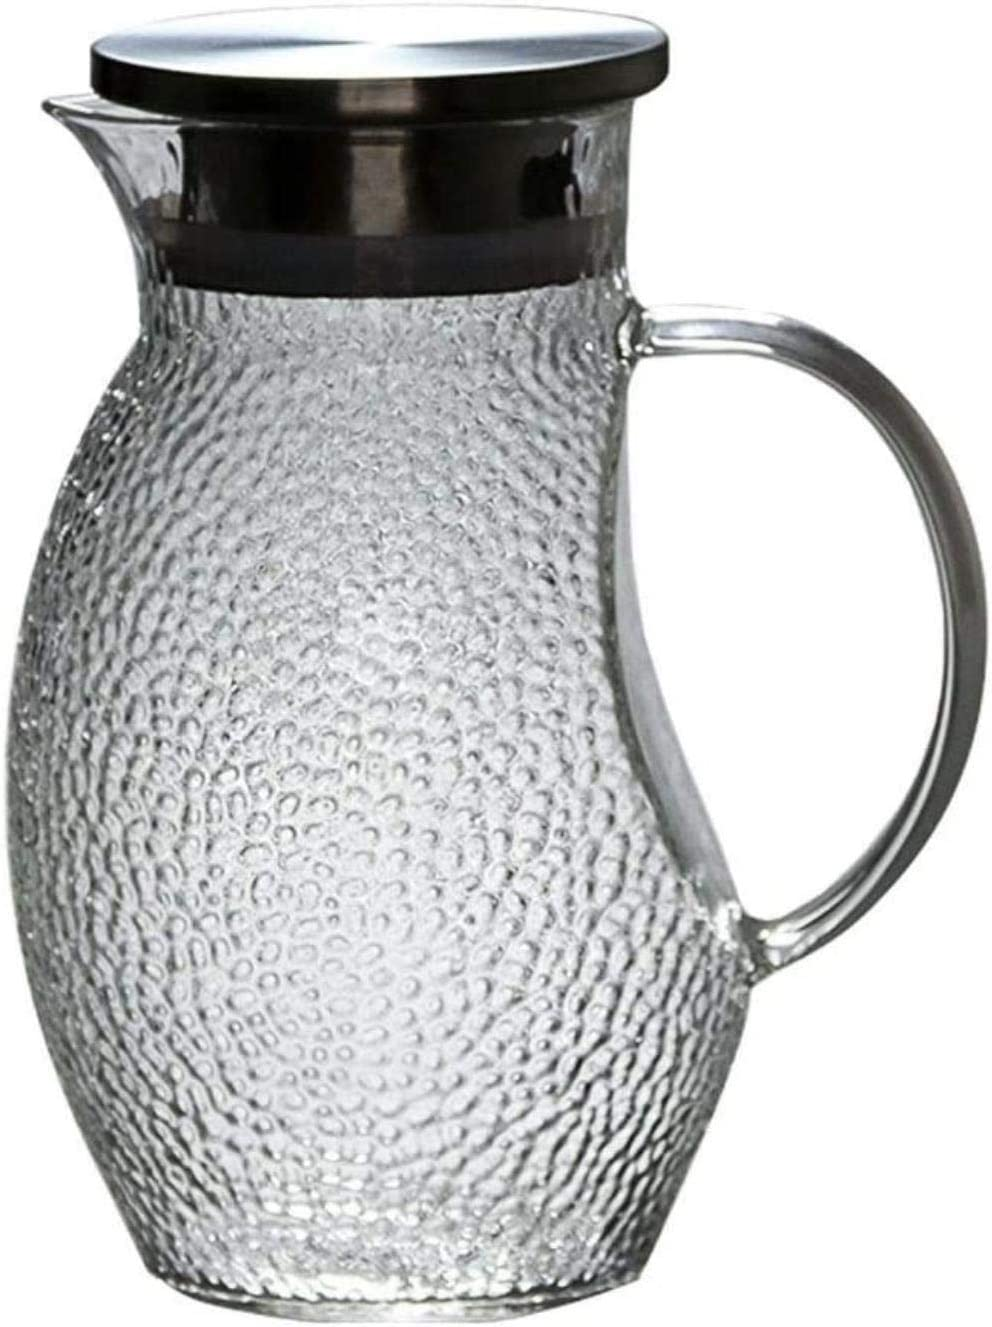 CHAIODENGZI Super sale period limited Jugs Cool Kettle Limited price Glass Resistant Temperature High Th